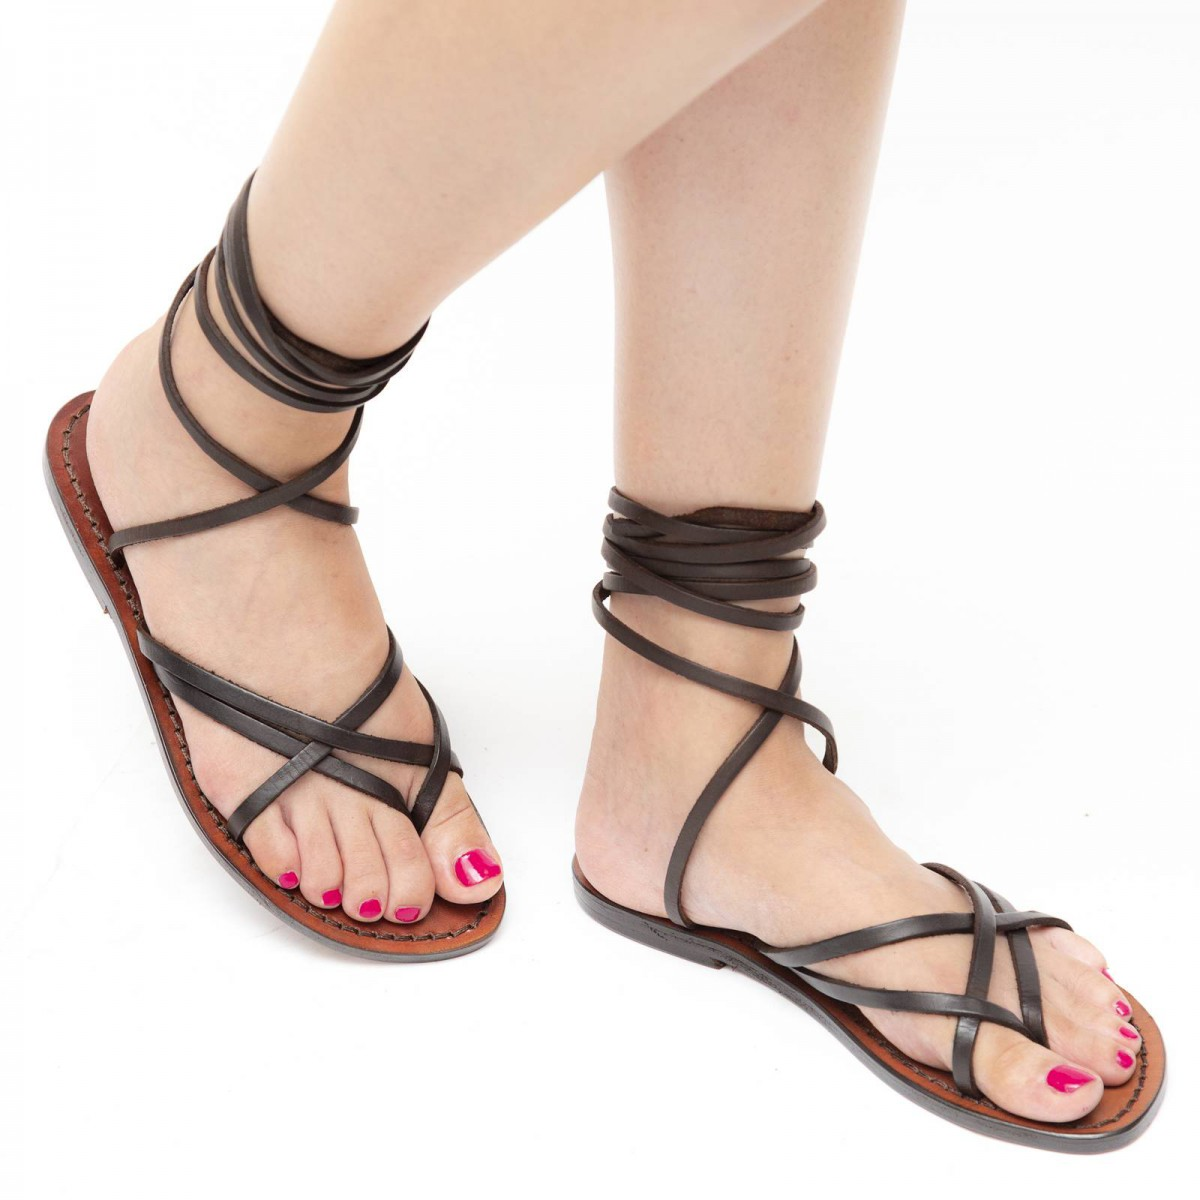 Womens Strappy Leather Sandals Handmade In Italy In Dark